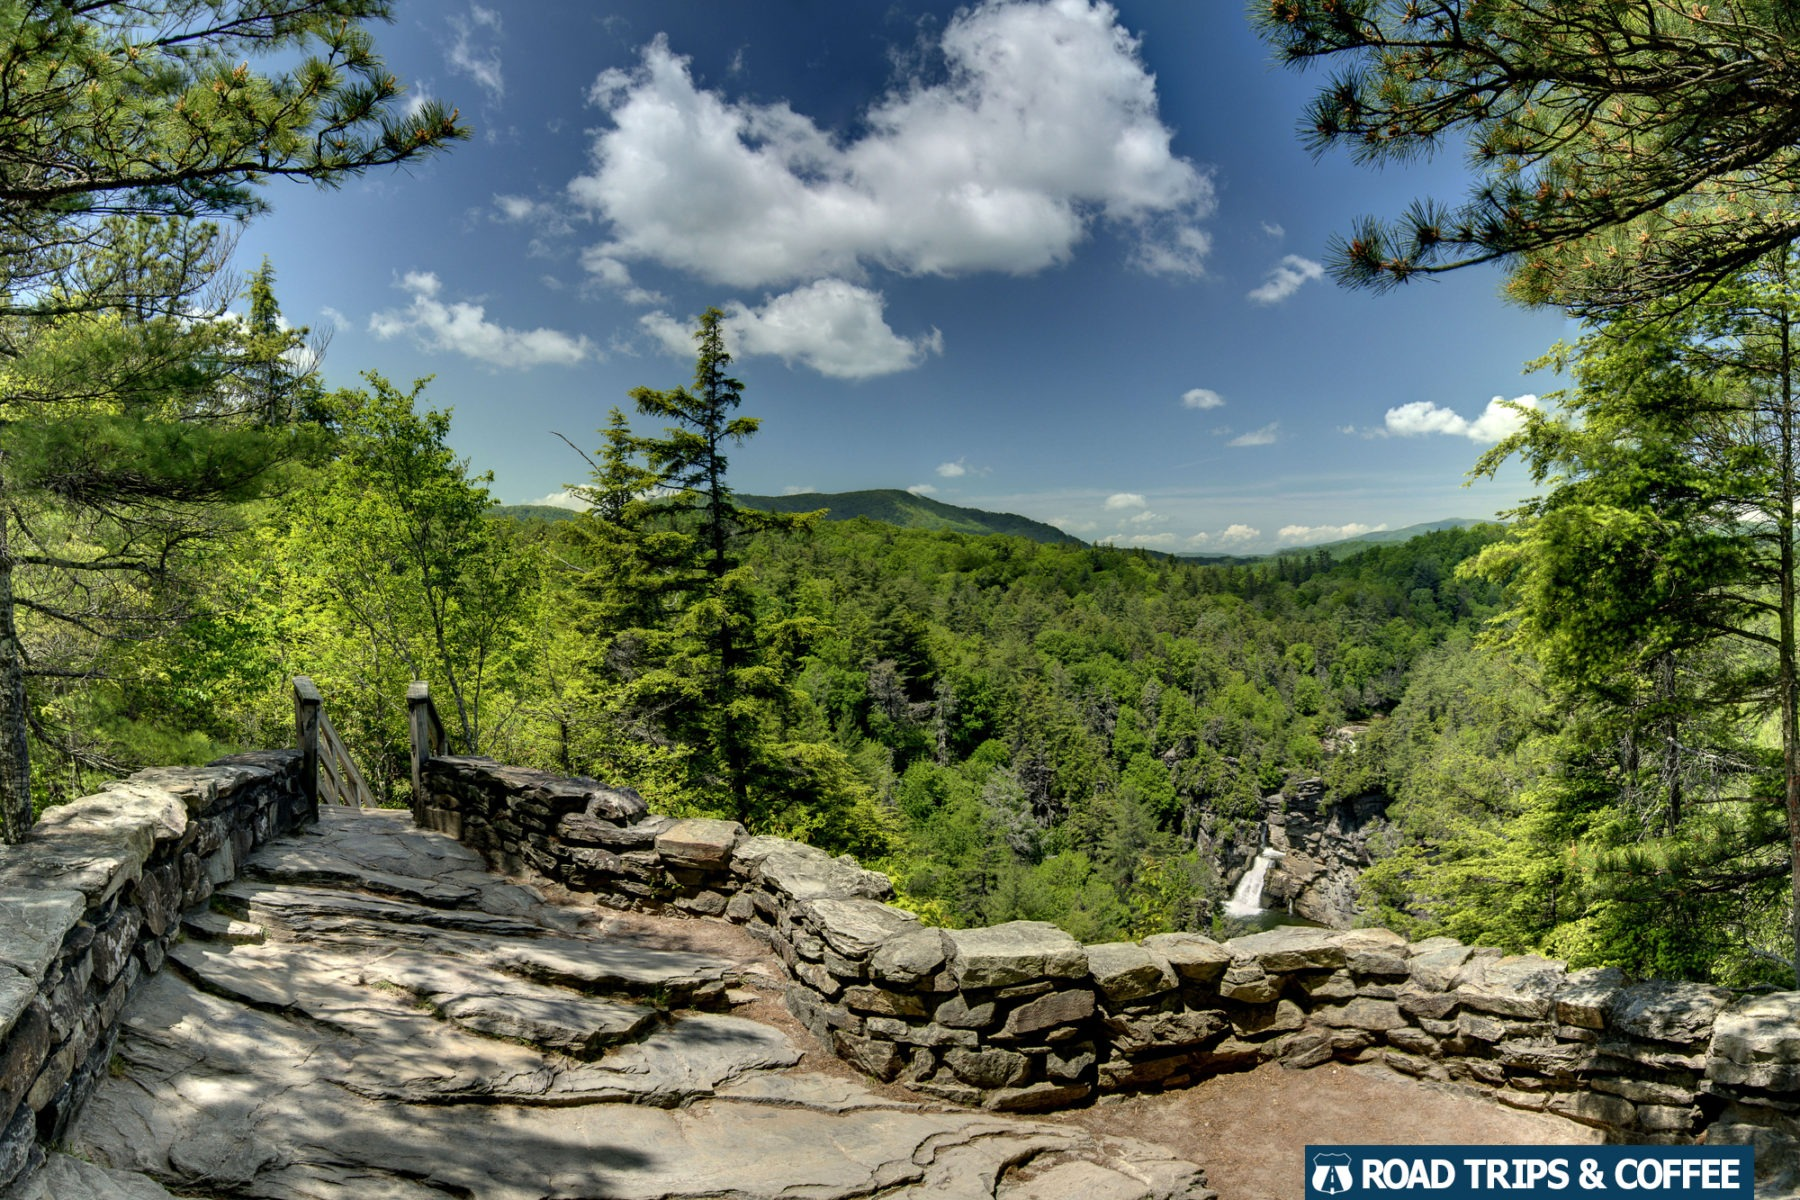 The expansive view of the gorge and waterfalls from Erwin's View at Linville Falls on the Blue Ridge Parkway in North Carolina